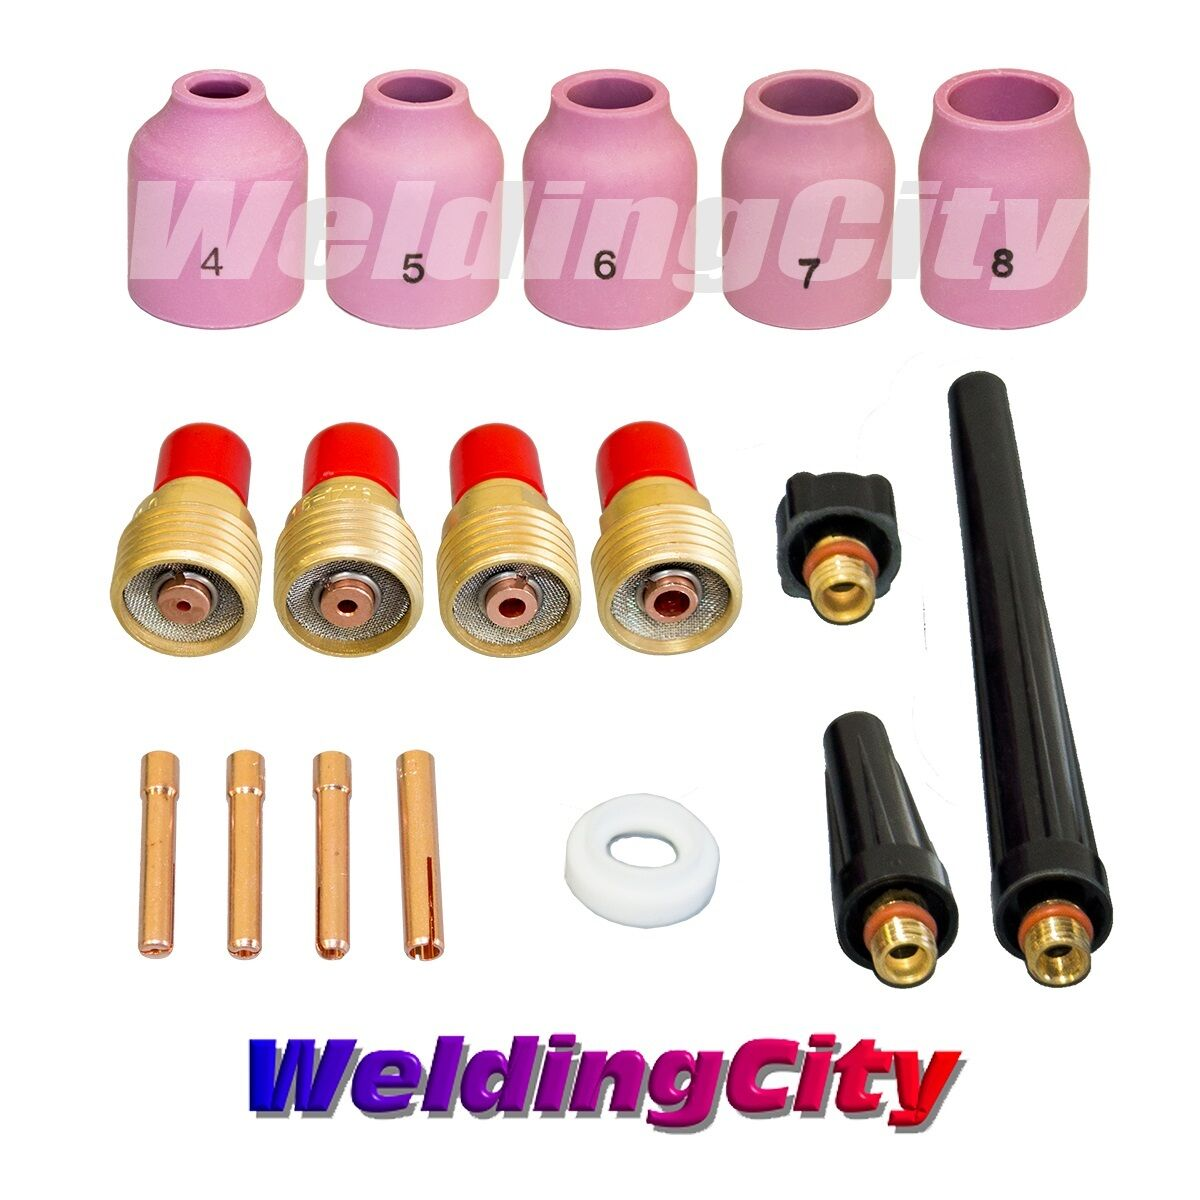 18 and 26 Series in Lincoln Miller ESAB Weldcraft CK Everlast WeldingCity 10-pk Gas Lens Ceramic Cup 54N16 for TIG Welding Torch 17 #6, 3//8